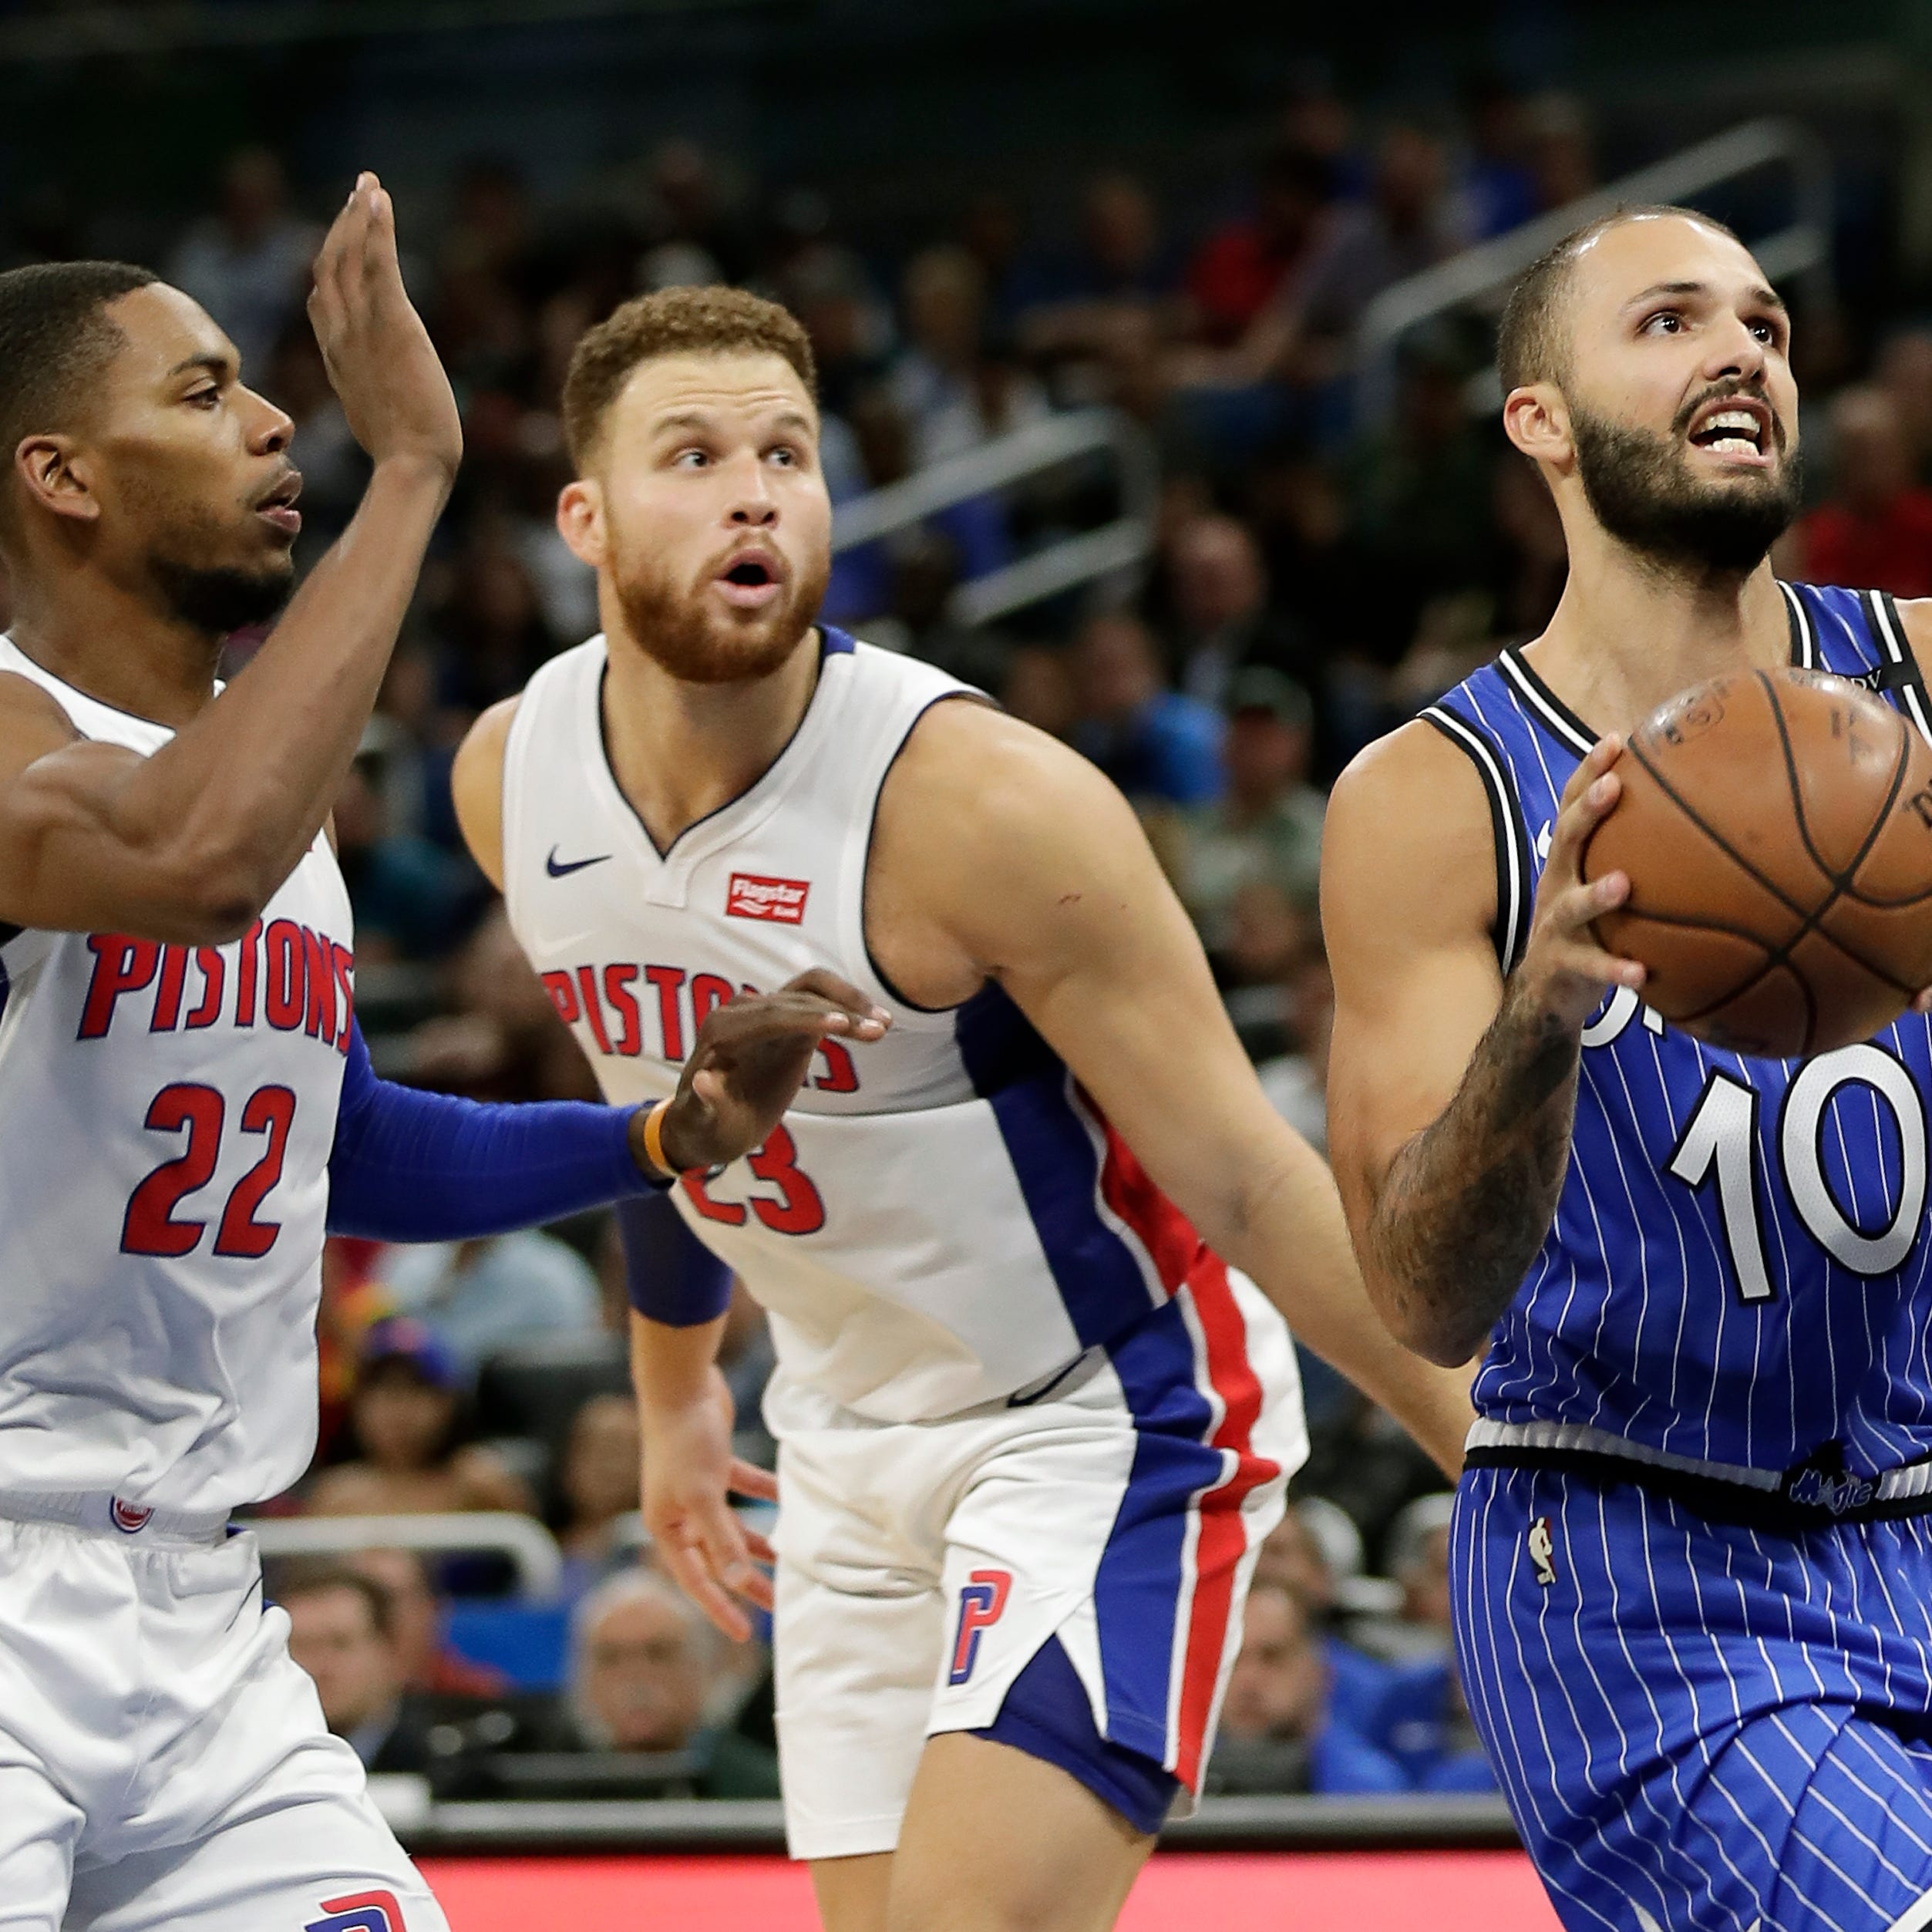 Orlando Magic's Evan Fournier looks for a shot as he gets past Detroit Pistons' Glenn Robinson III (22) and Blake Griffin (23) during the first half Nov. 7, 2018, in Orlando, Fla.